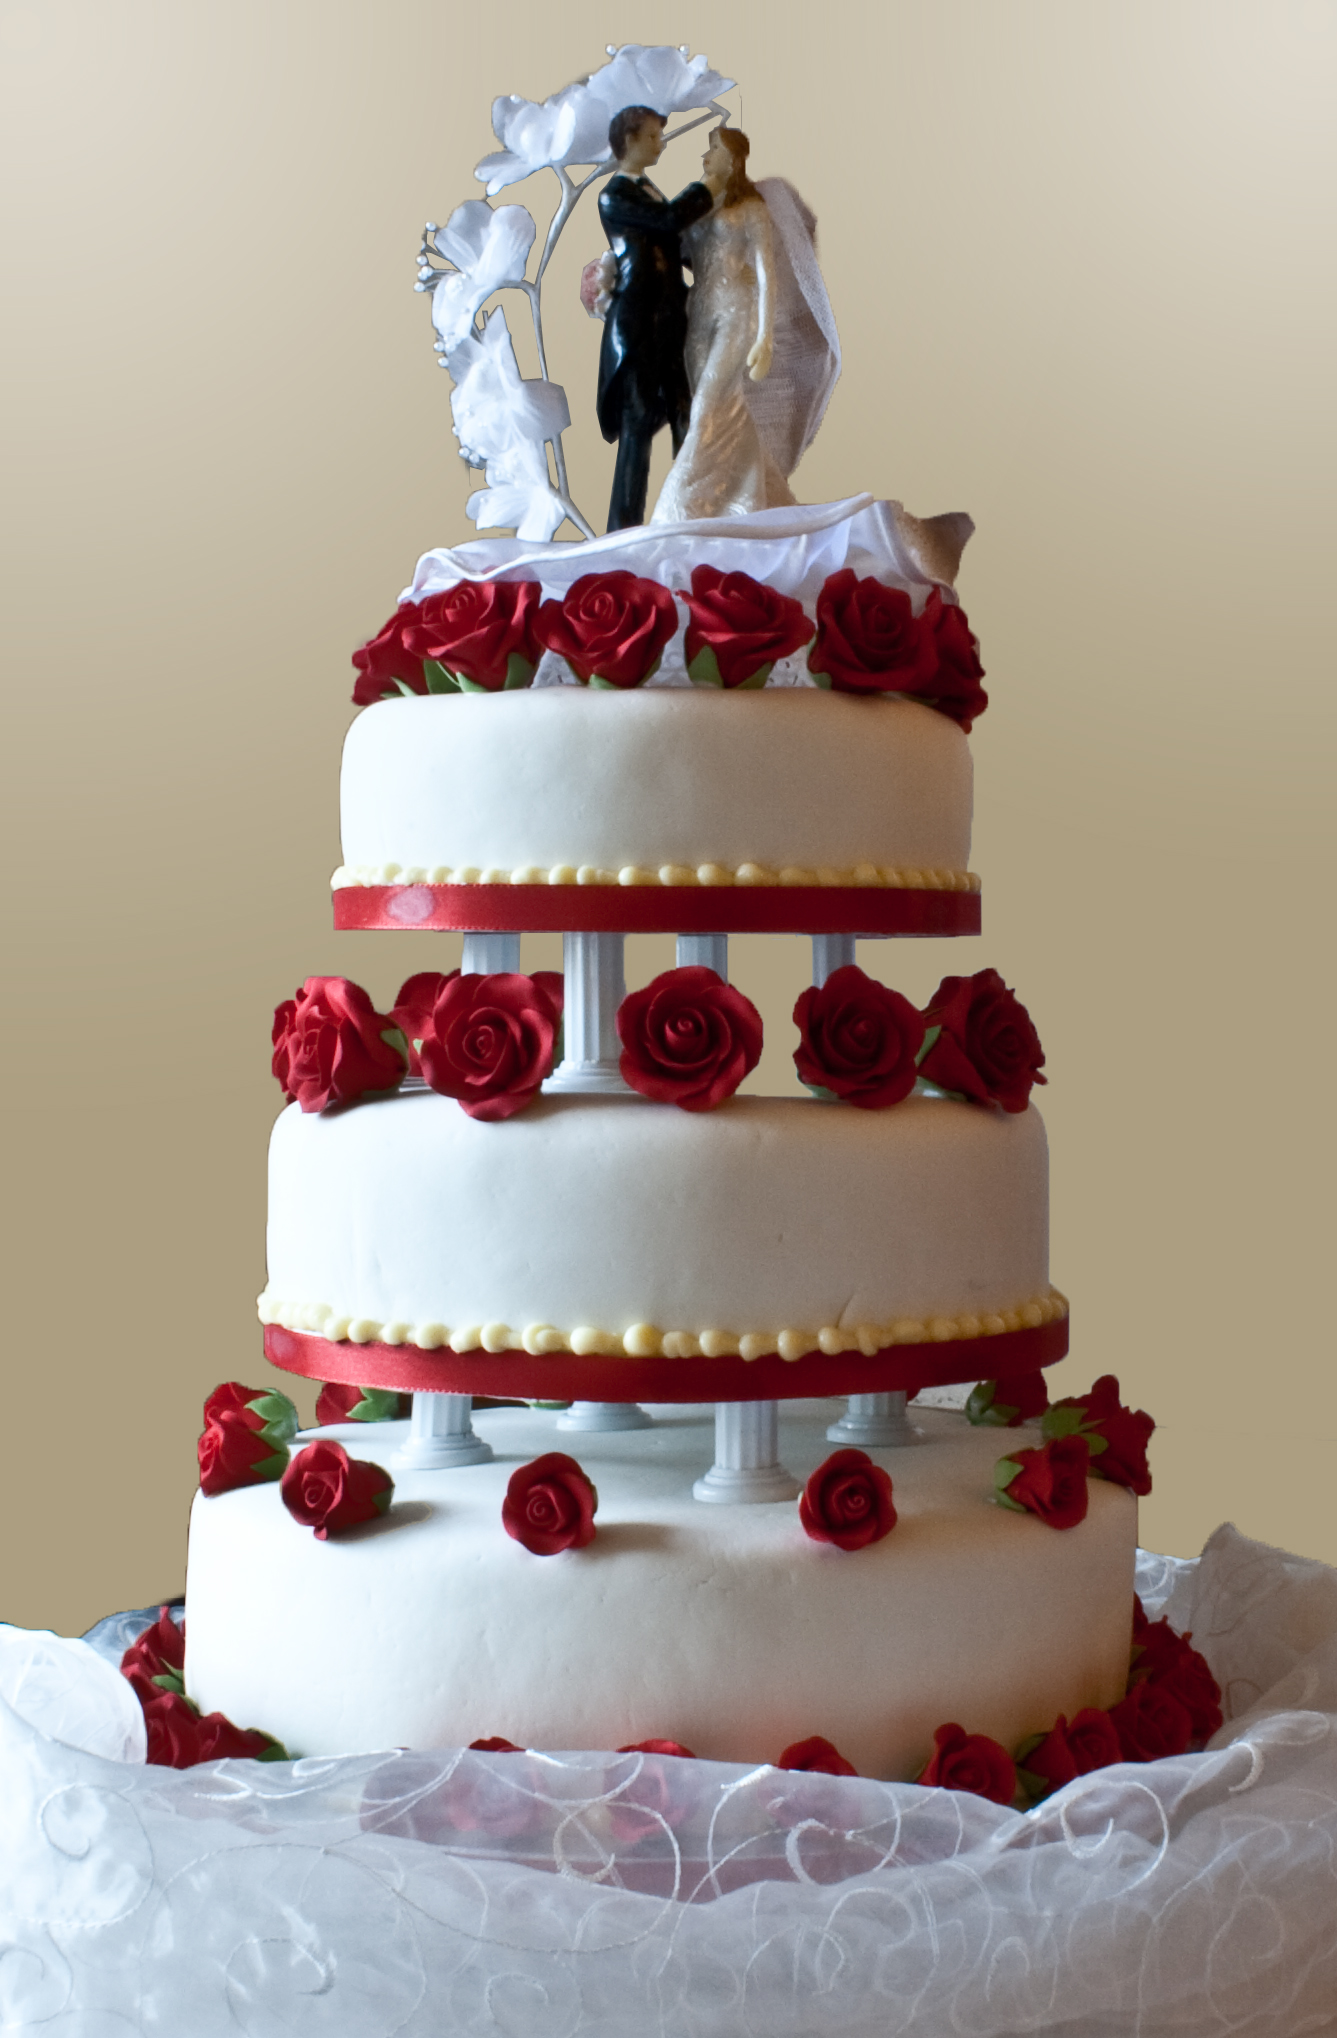 How To Make Traditional Ukrainian Wedding Cake